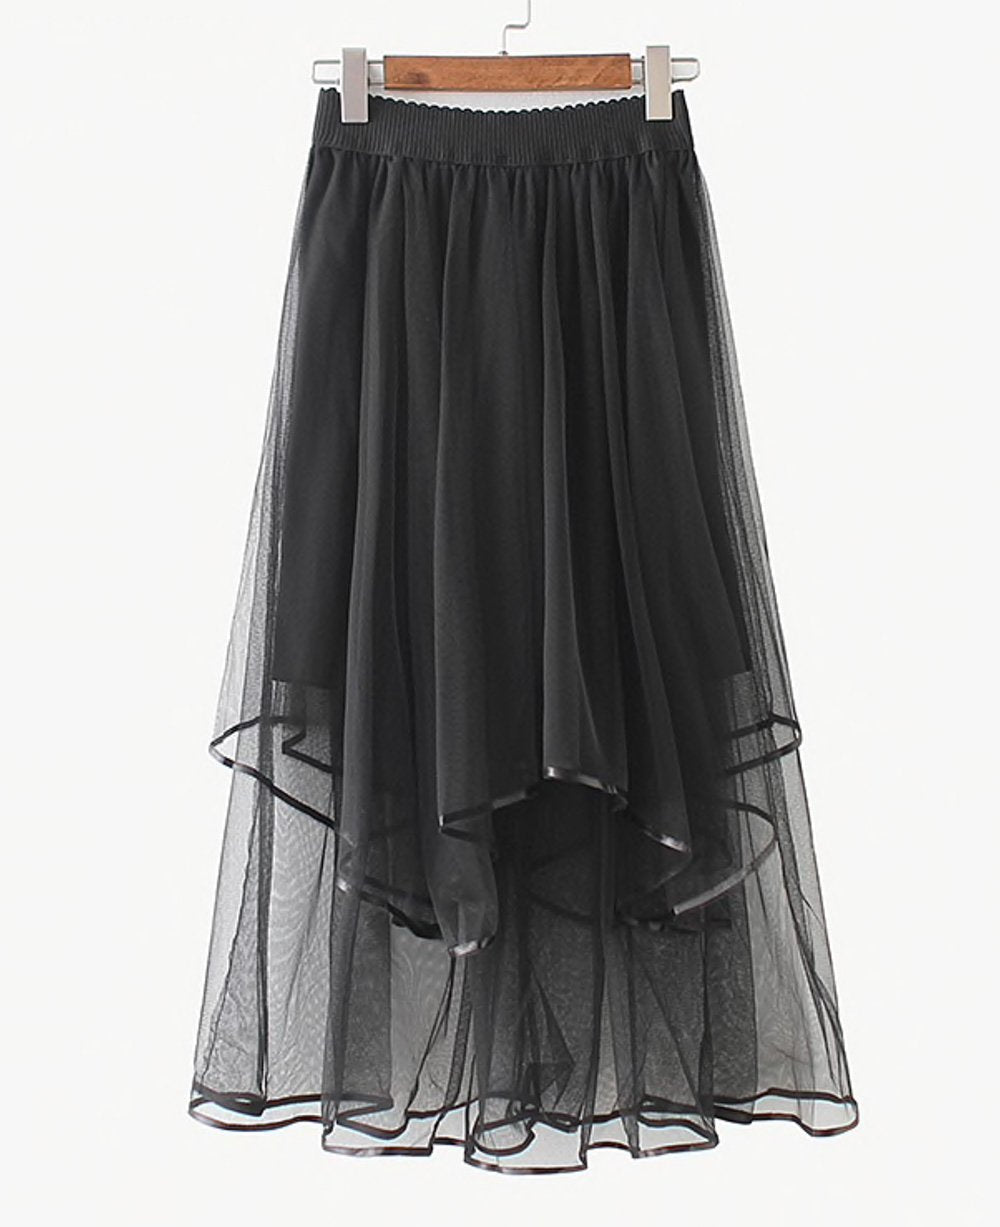 Alice Times Two Elastic Waist Tiered Tulle Midi Skirt in Black - Lookbook Boutique